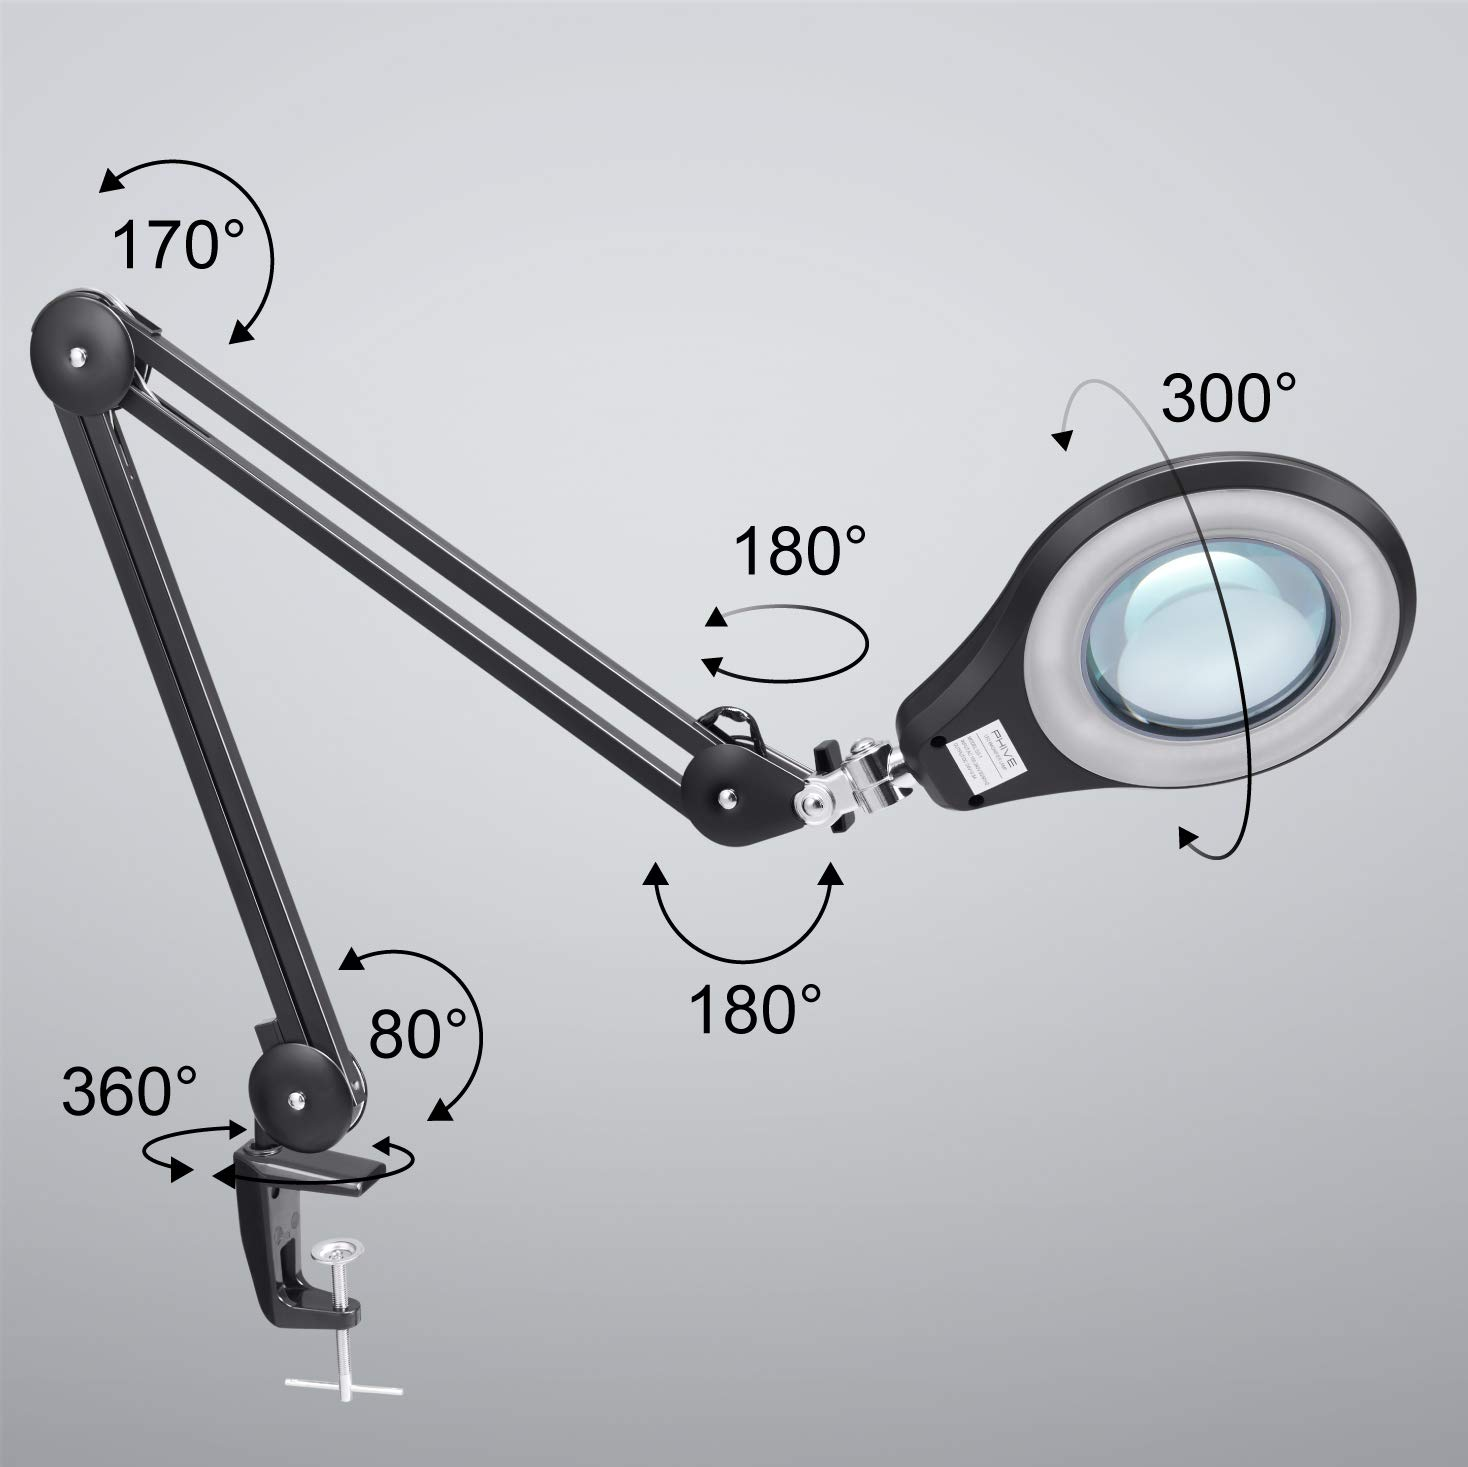 LED Magnifying Lamp, PHIVE Daylight Bright Magnifier Desk Lamp, Dimmable Task Lamp with Clamp, 5 Diopter, 5'' Diameter Lens, Highly Adjustable Swing Arm Craft, Workbench, Drafting, Work Light by PHIVE (Image #2)